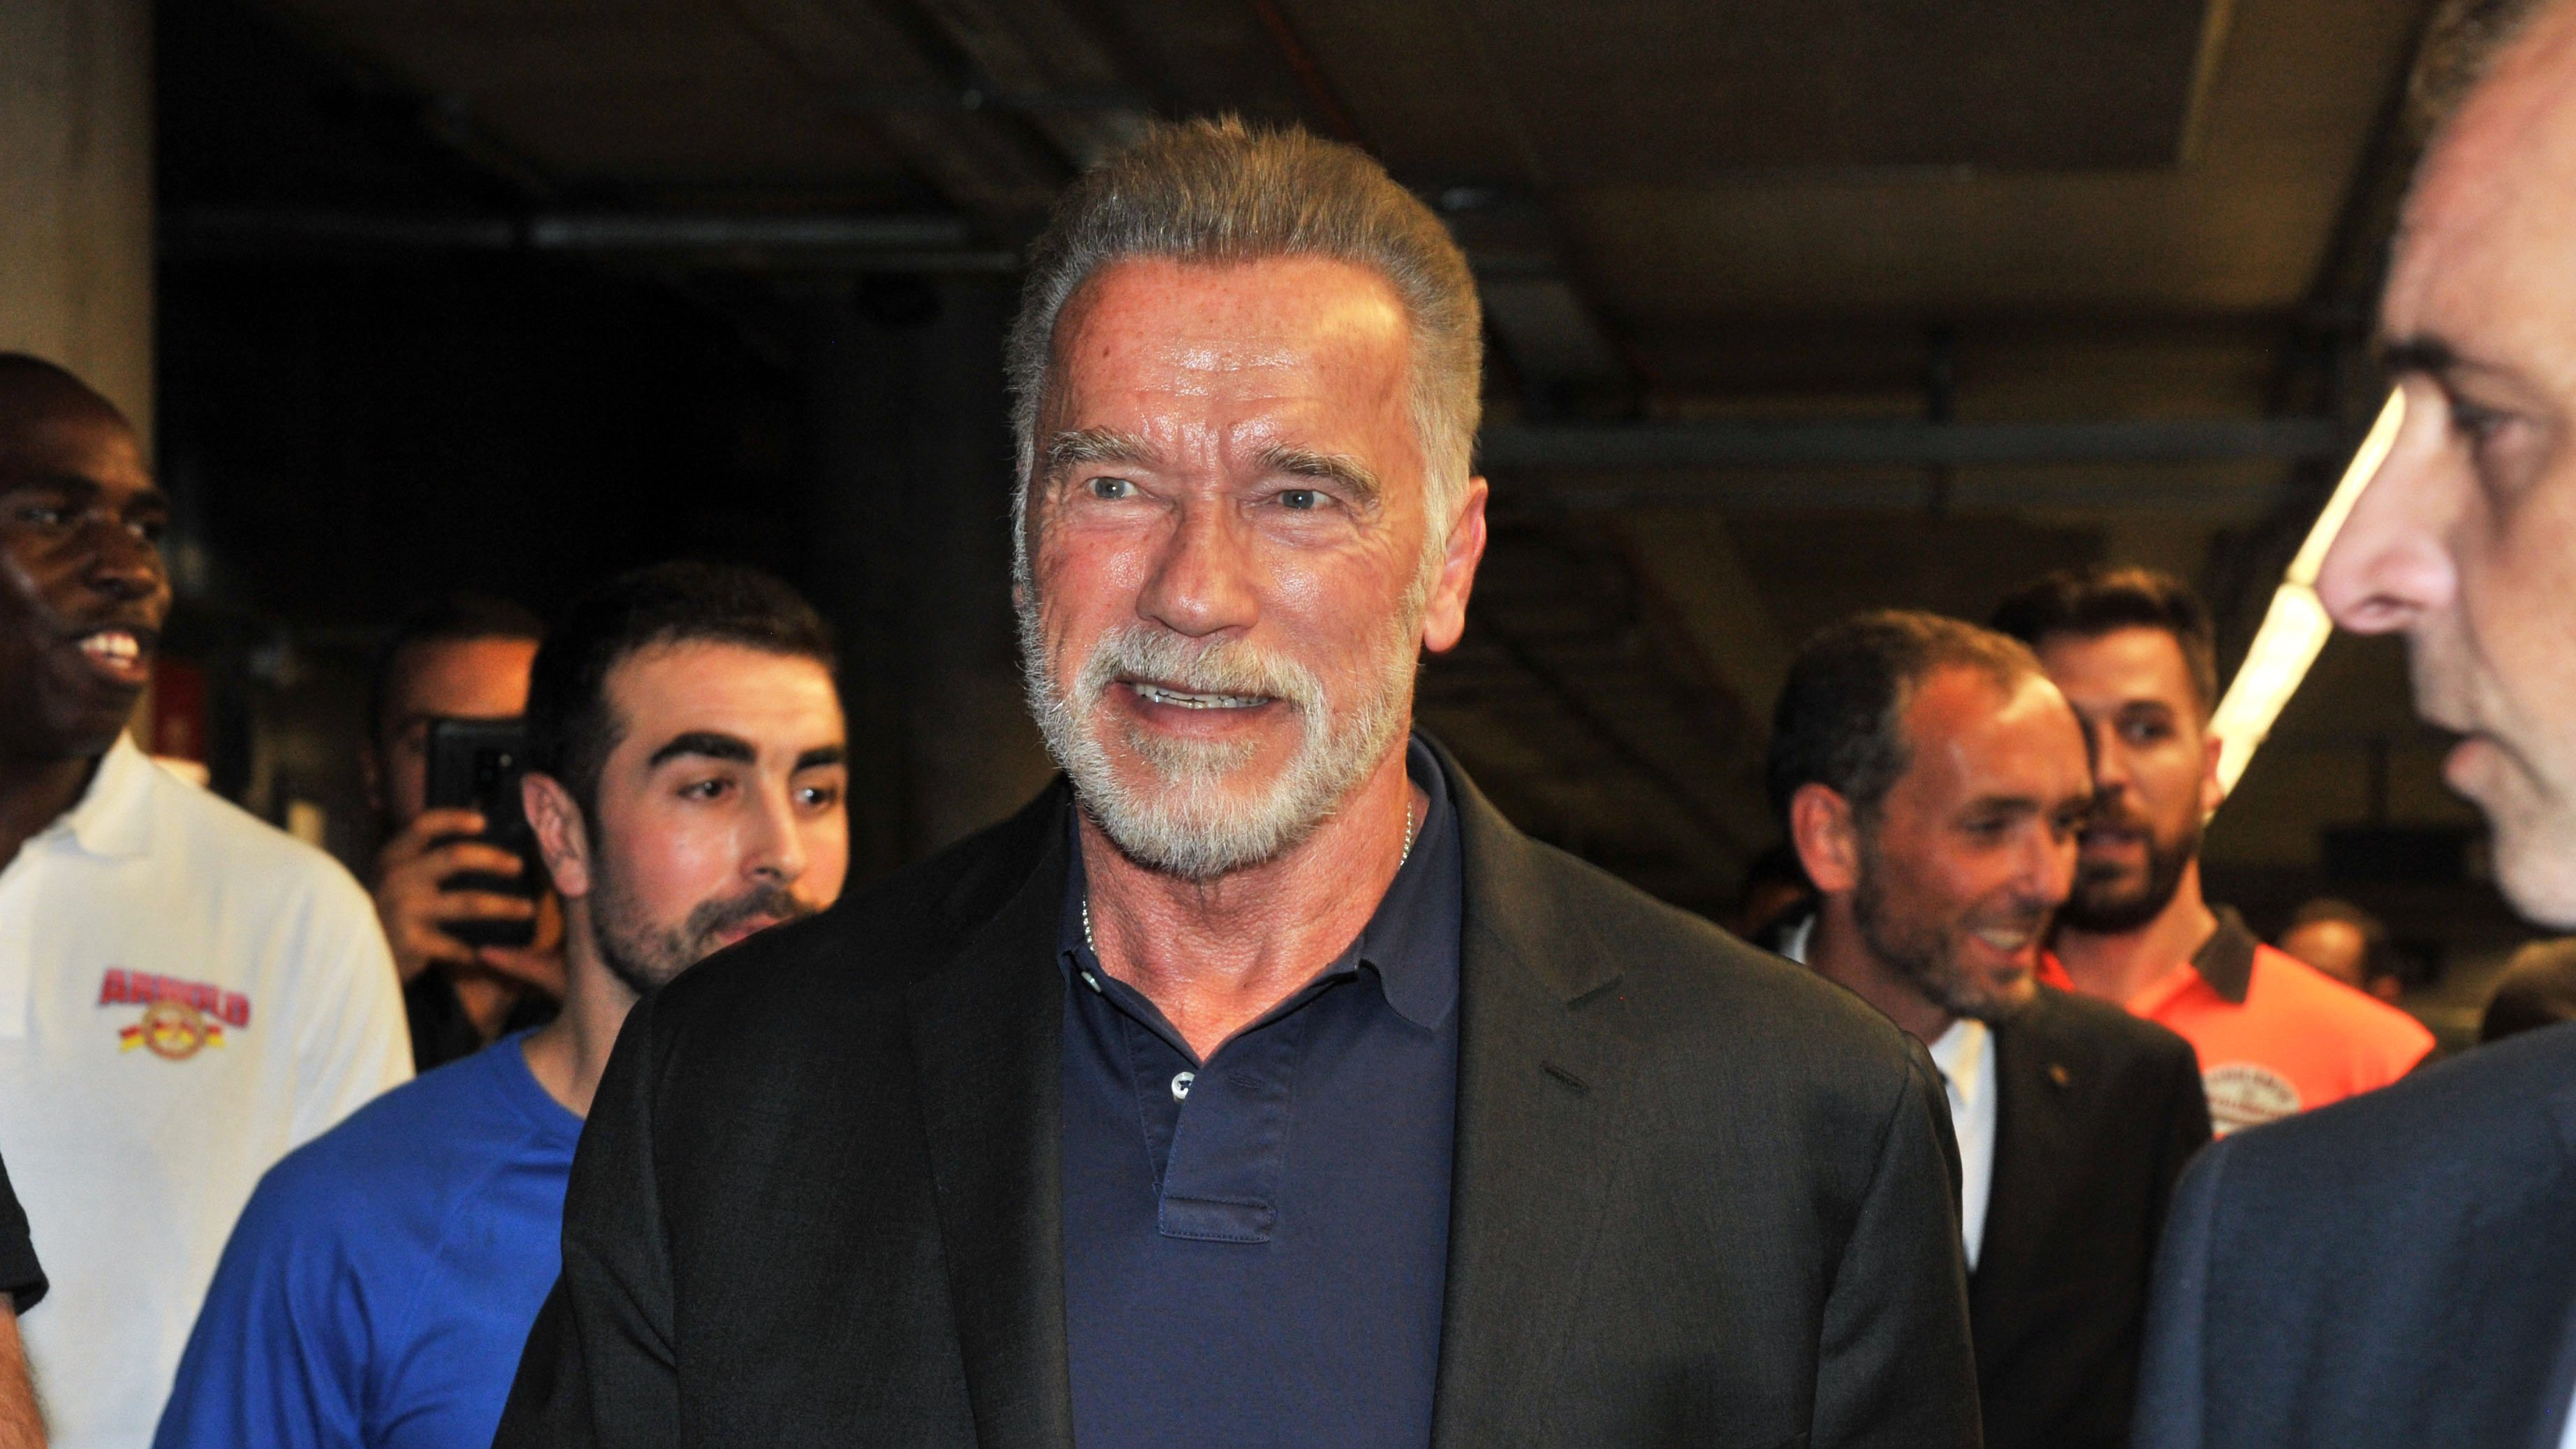 Arnold Schwarzenegger Speaks Out After Getting Attacked in South Africa: 'Thanks for Your Concern'